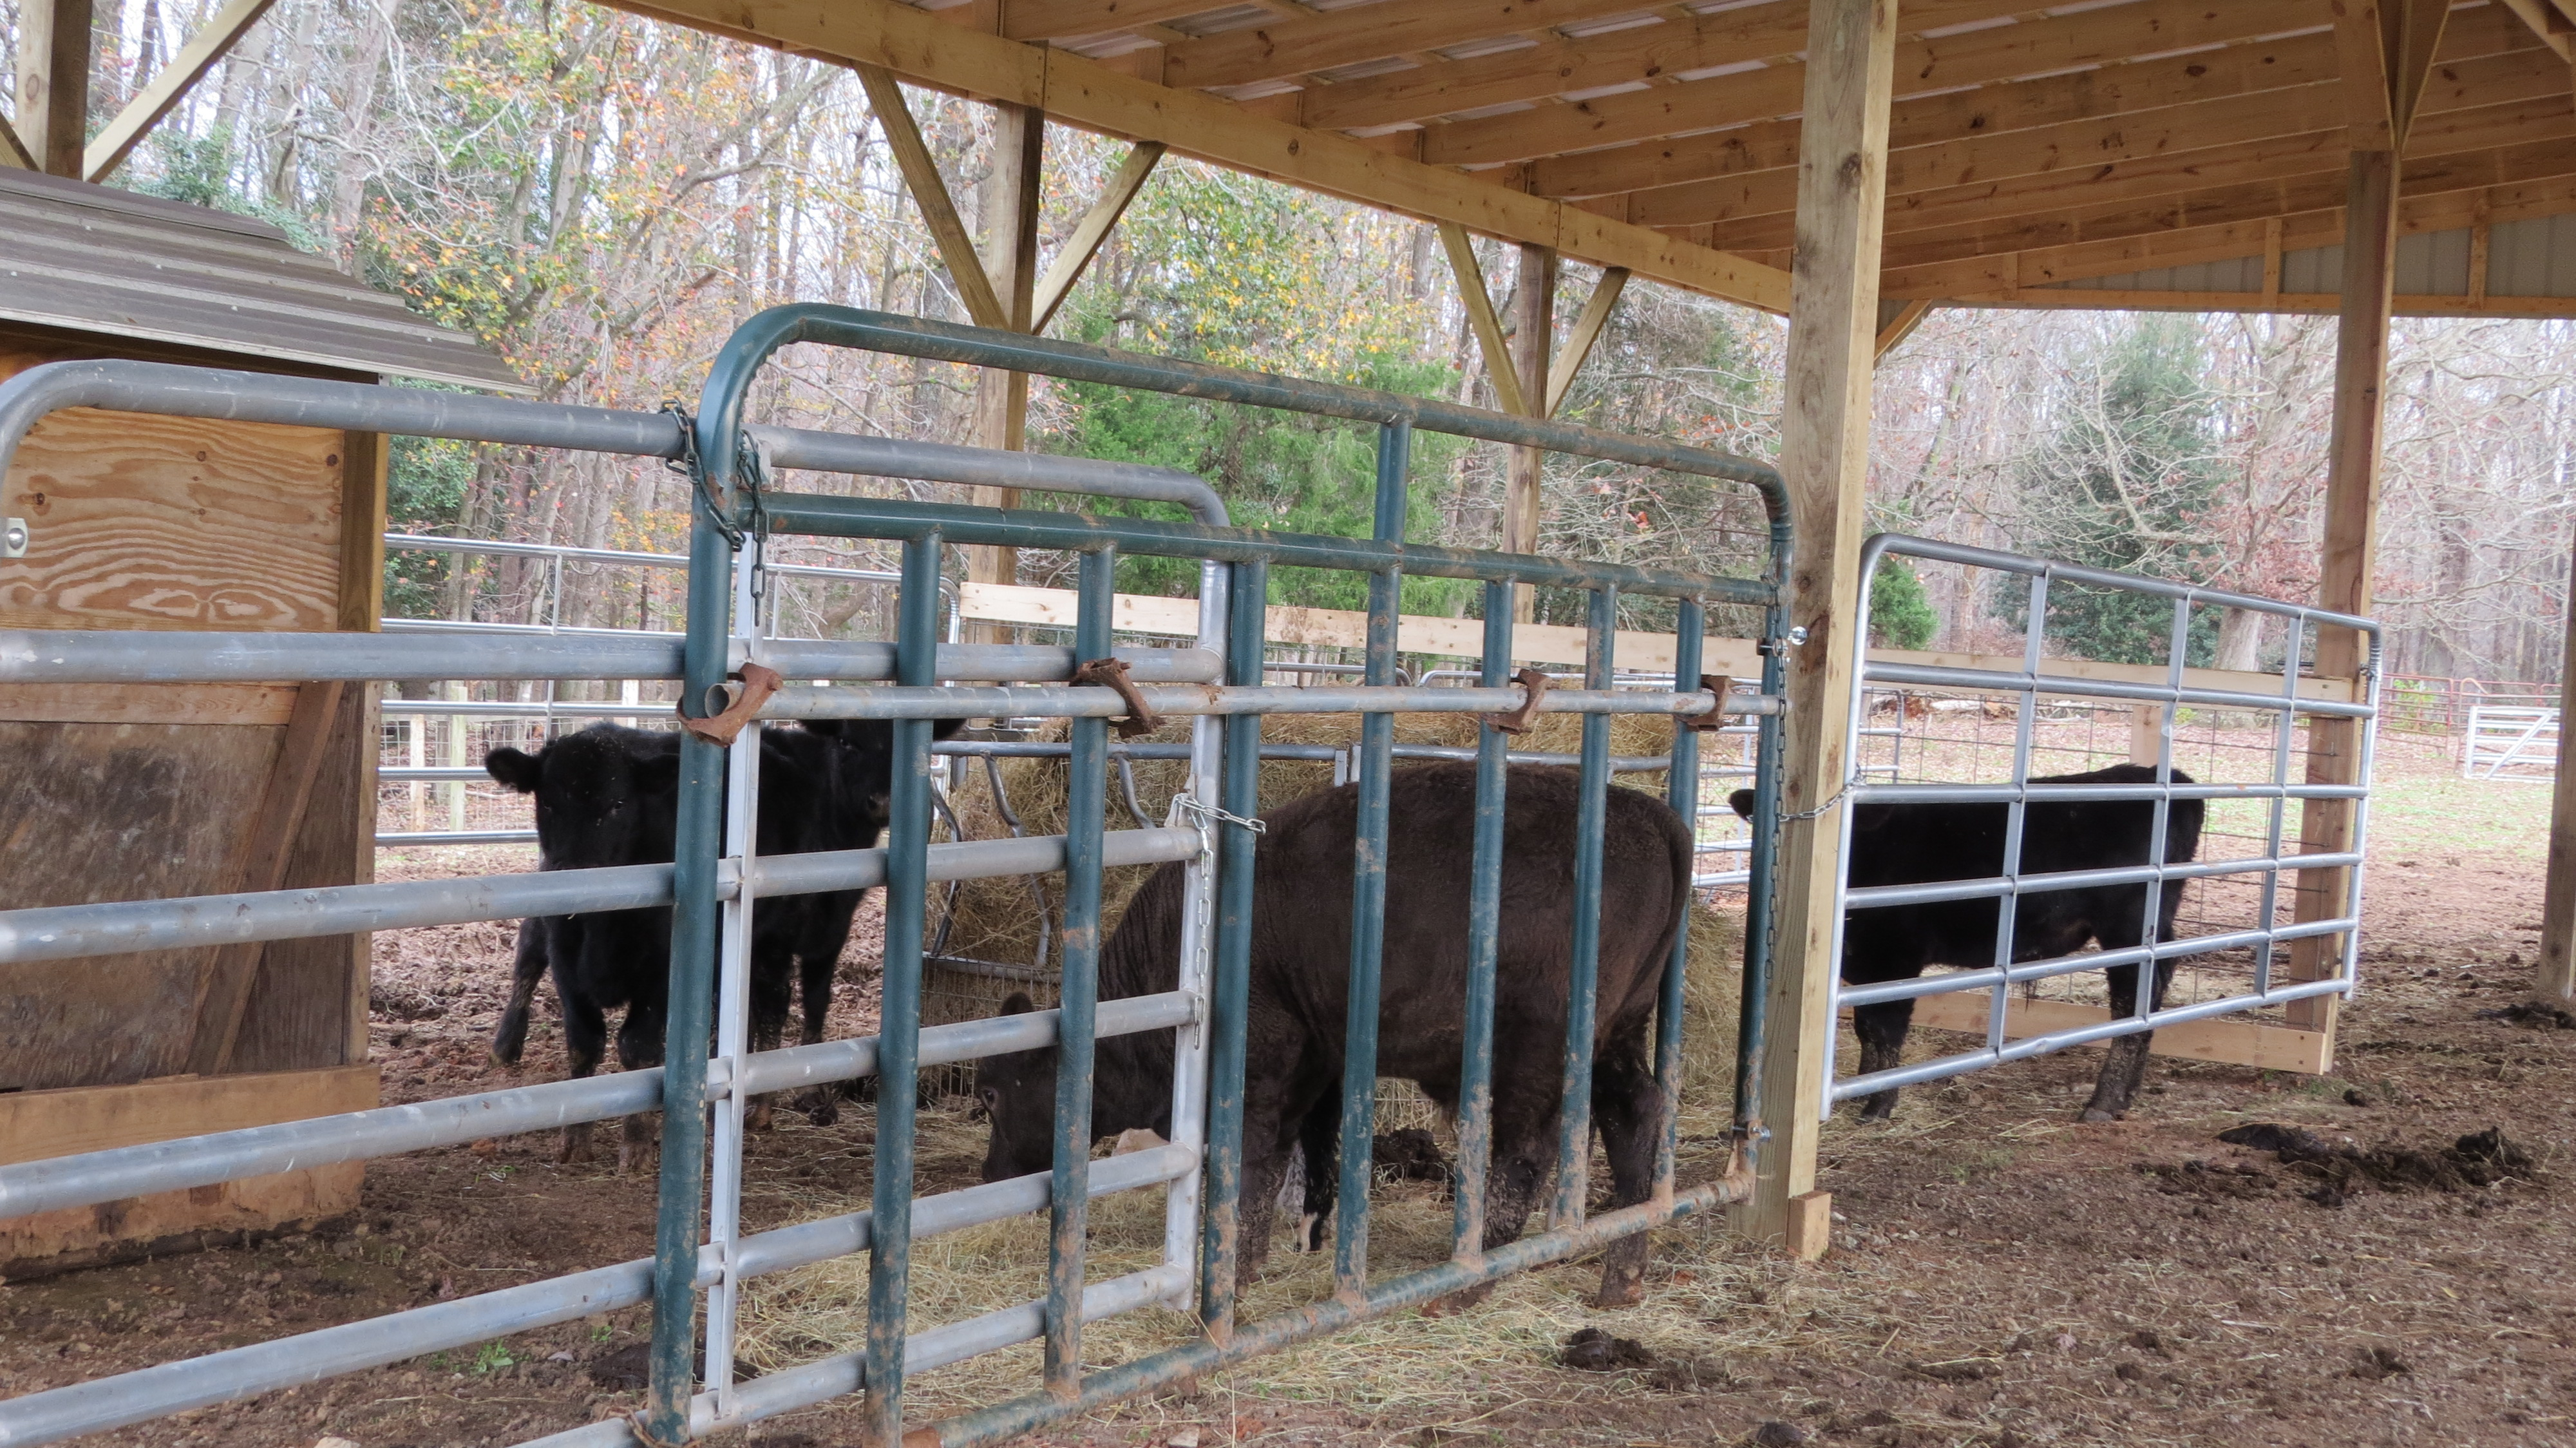 feeder lot homemade cattle details wooden metal m catalog hay index